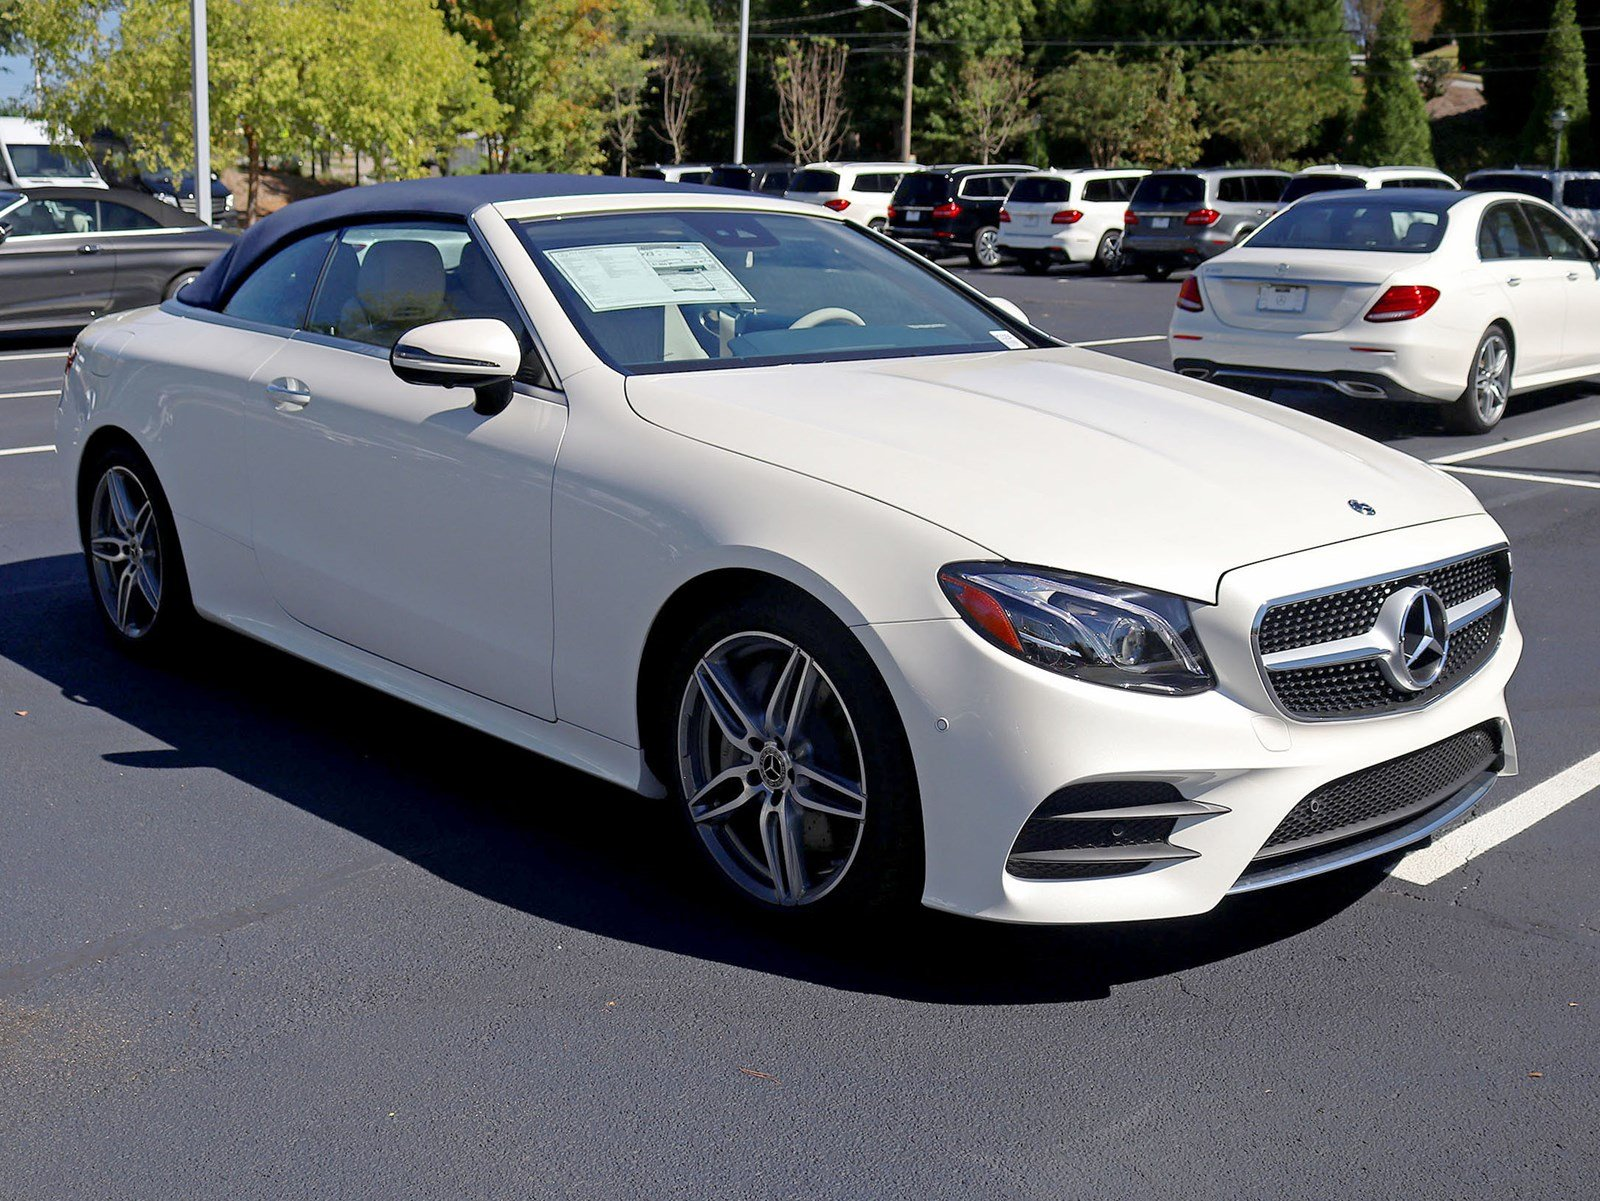 New 2019 Mercedes Benz E Class E 450 Cabriolet CABRIOLET in Atlanta